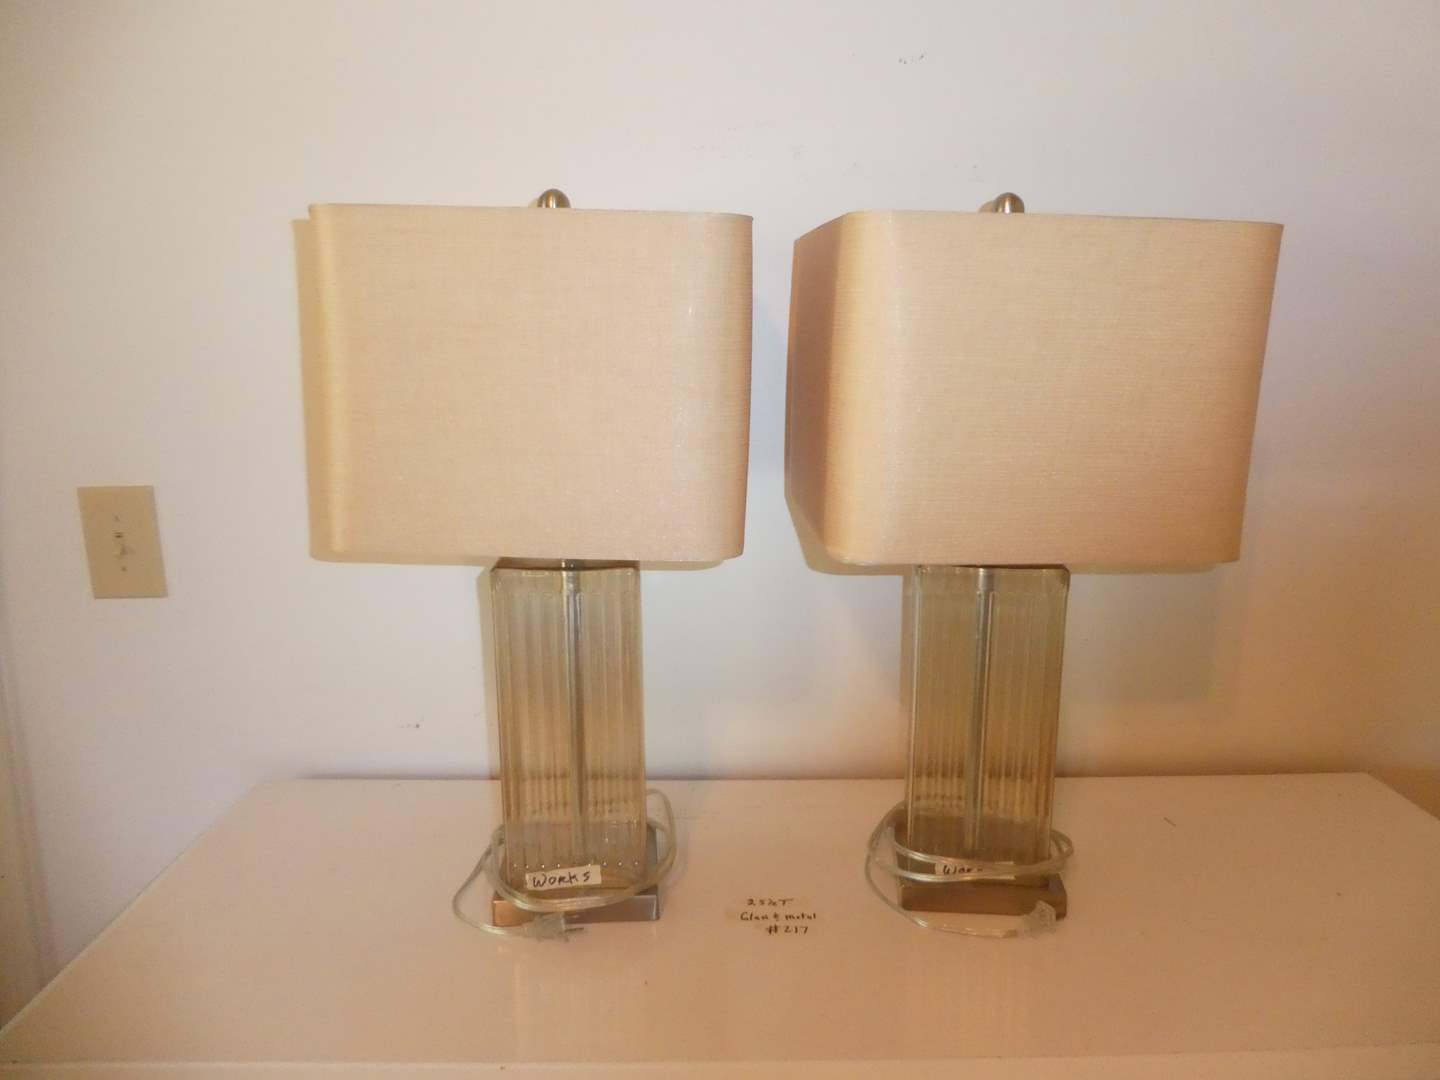 Lot # 217 - Pair of Glass and Metal Table Lamps (Shades Are a Champagne Color) (main image)